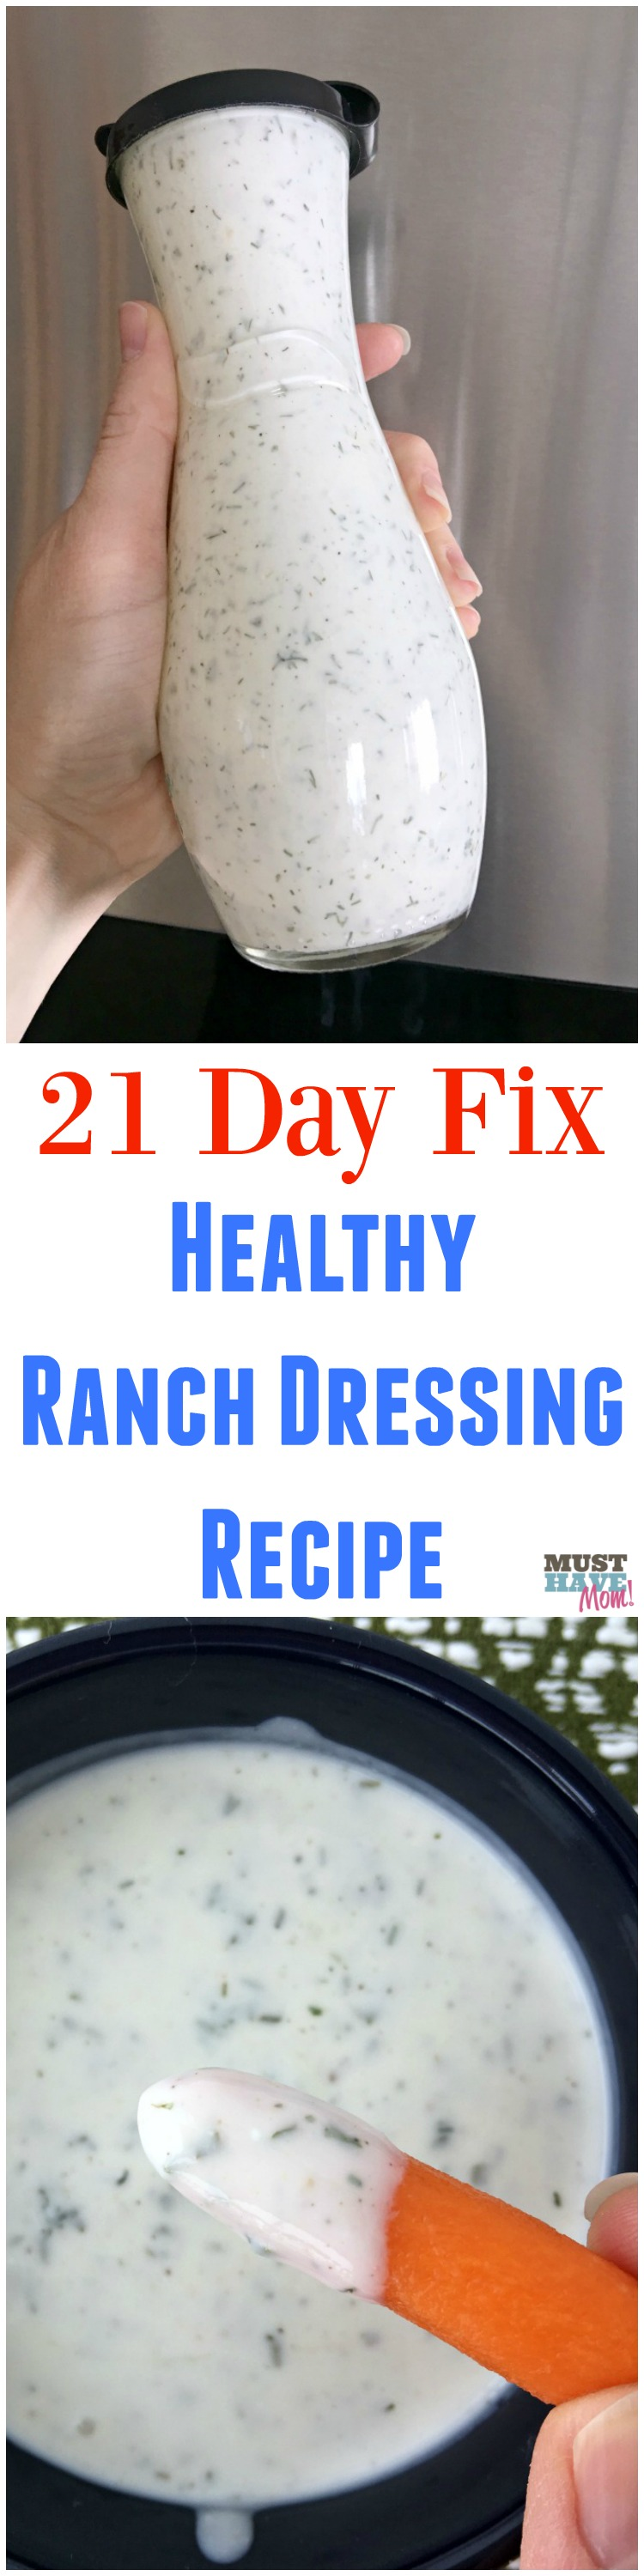 21 Day Fix recipes! 21 day fix ranch dressing recipe! This healthy homemade ranch dressing is better than any ranch I've ever bought at the store! Save this recipe!